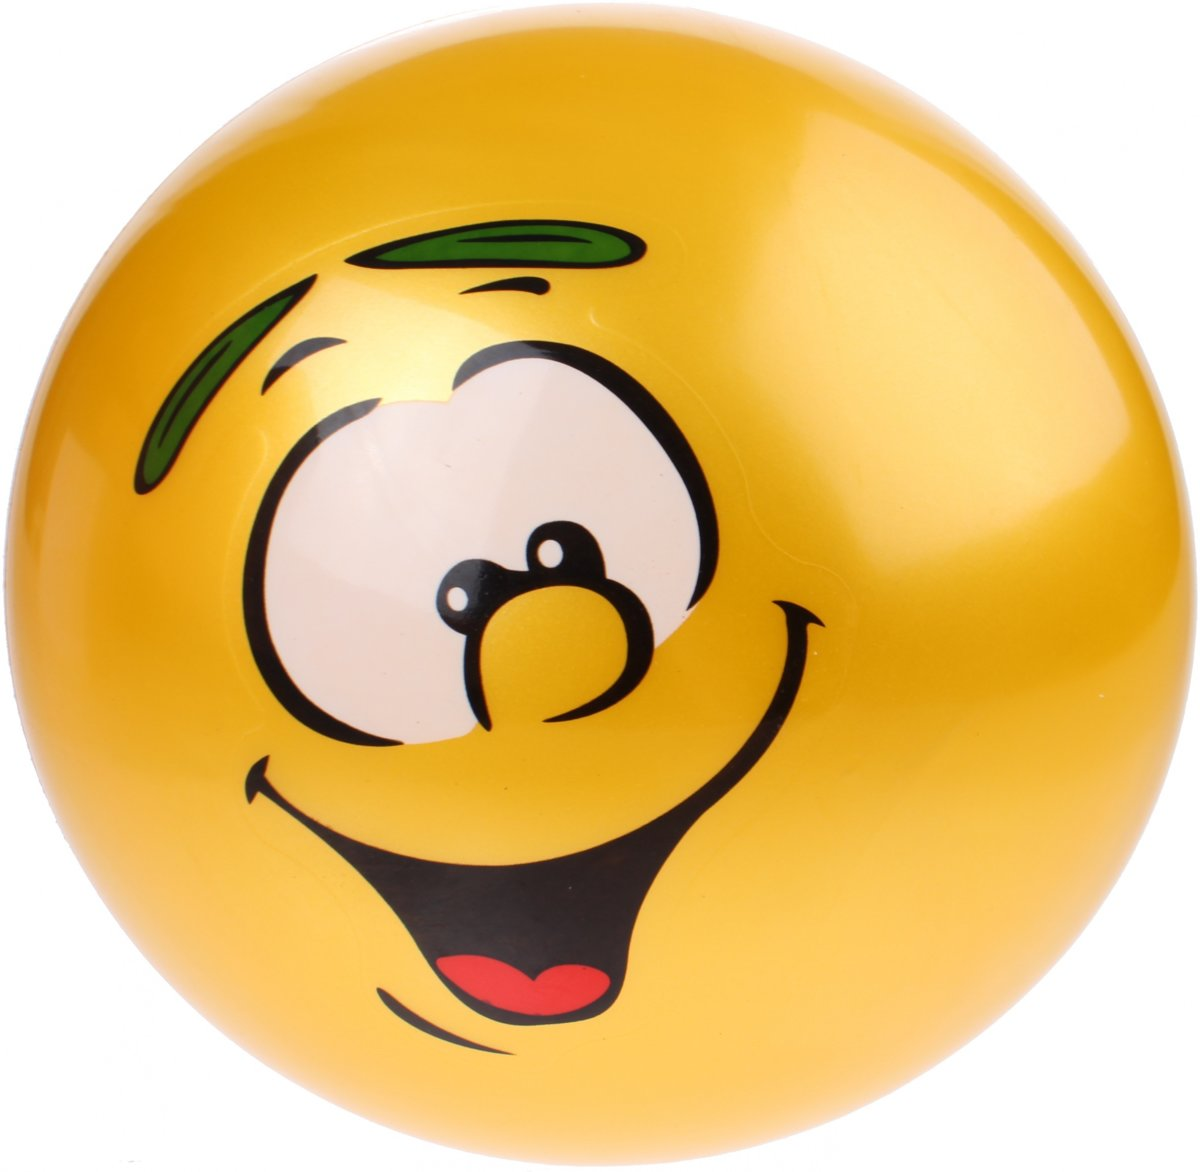 Johntoy Speelbal Smiley 20 Cm Geel